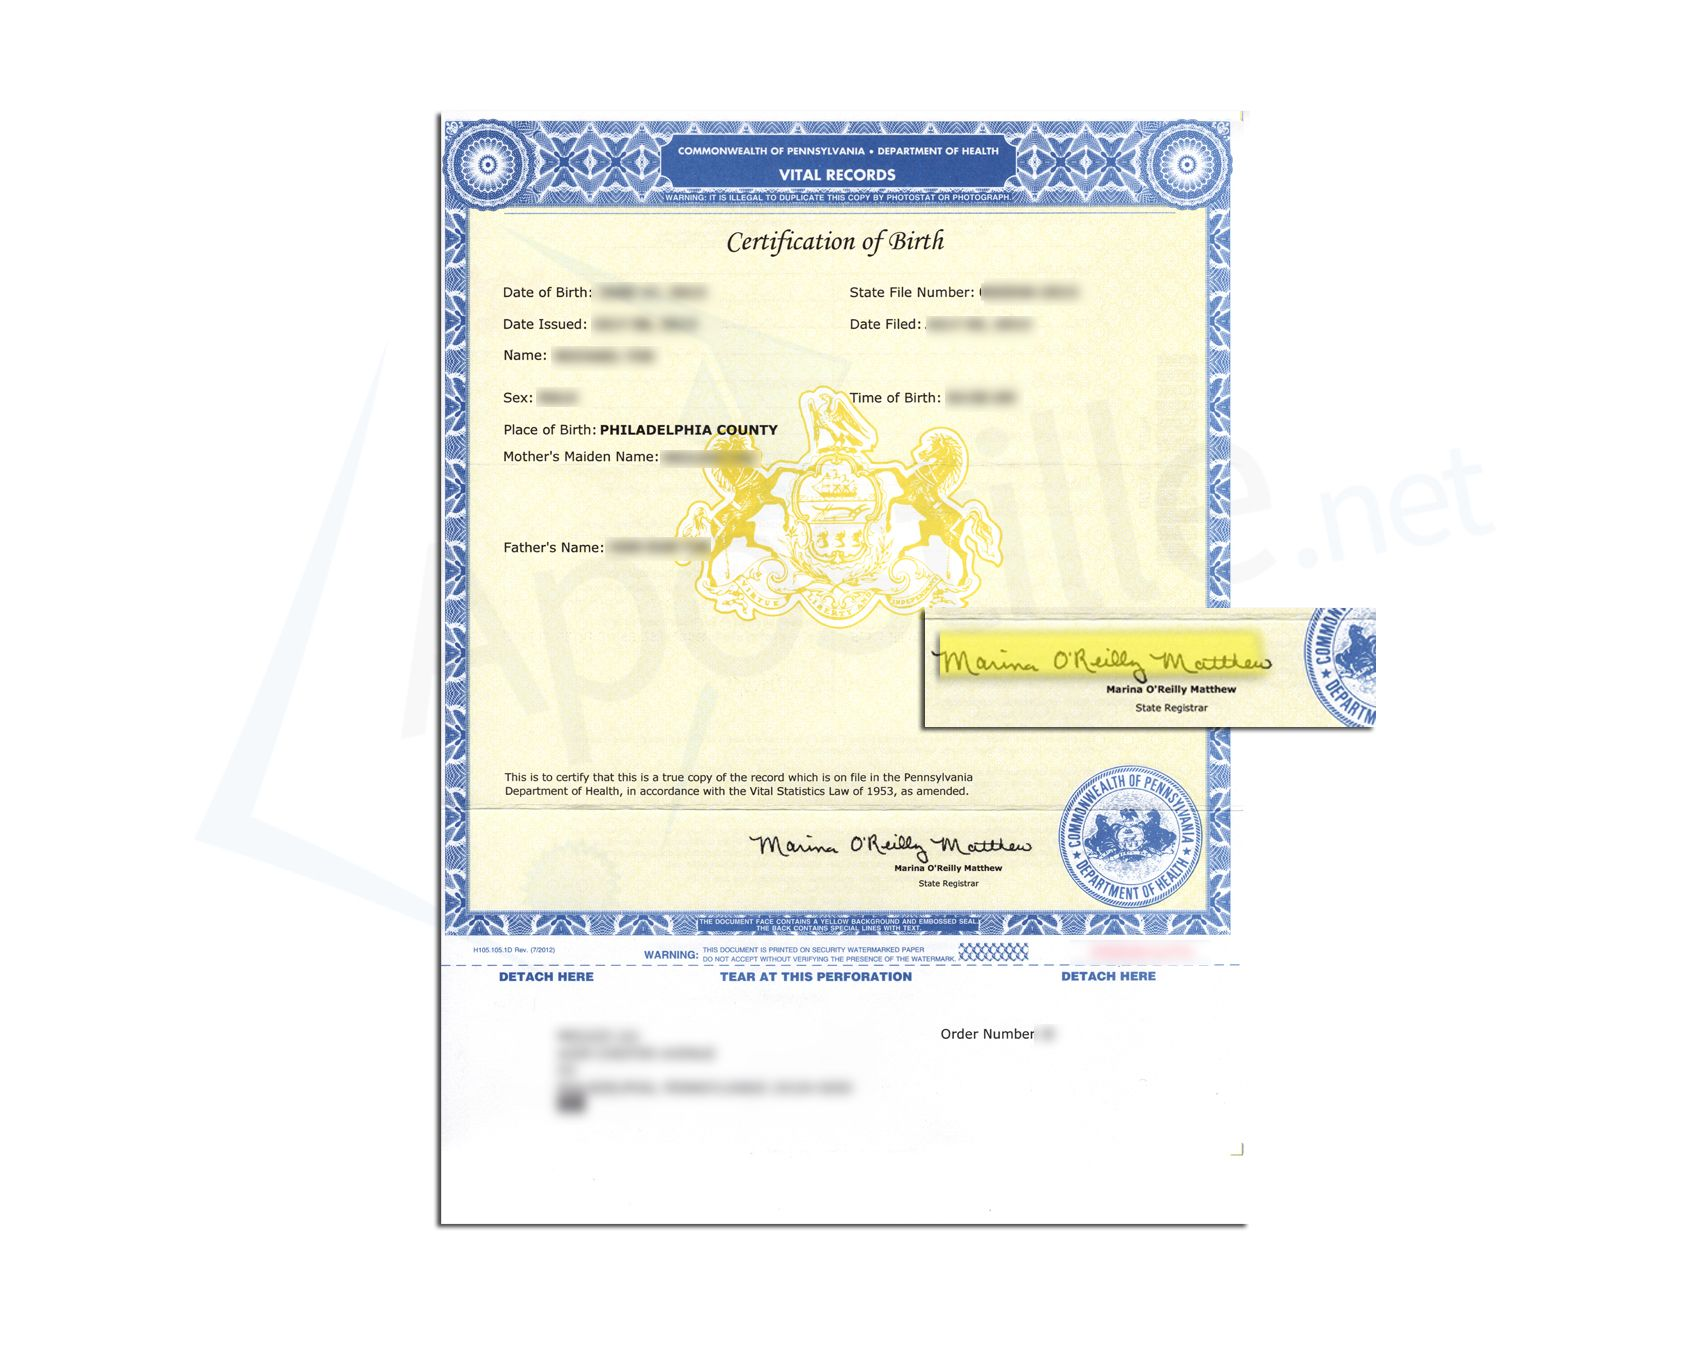 State of pennsylvania certification of birth issued by marina o state of pennsylvania certification of birth issued by marina oreilly matthew state registrar 1betcityfo Gallery